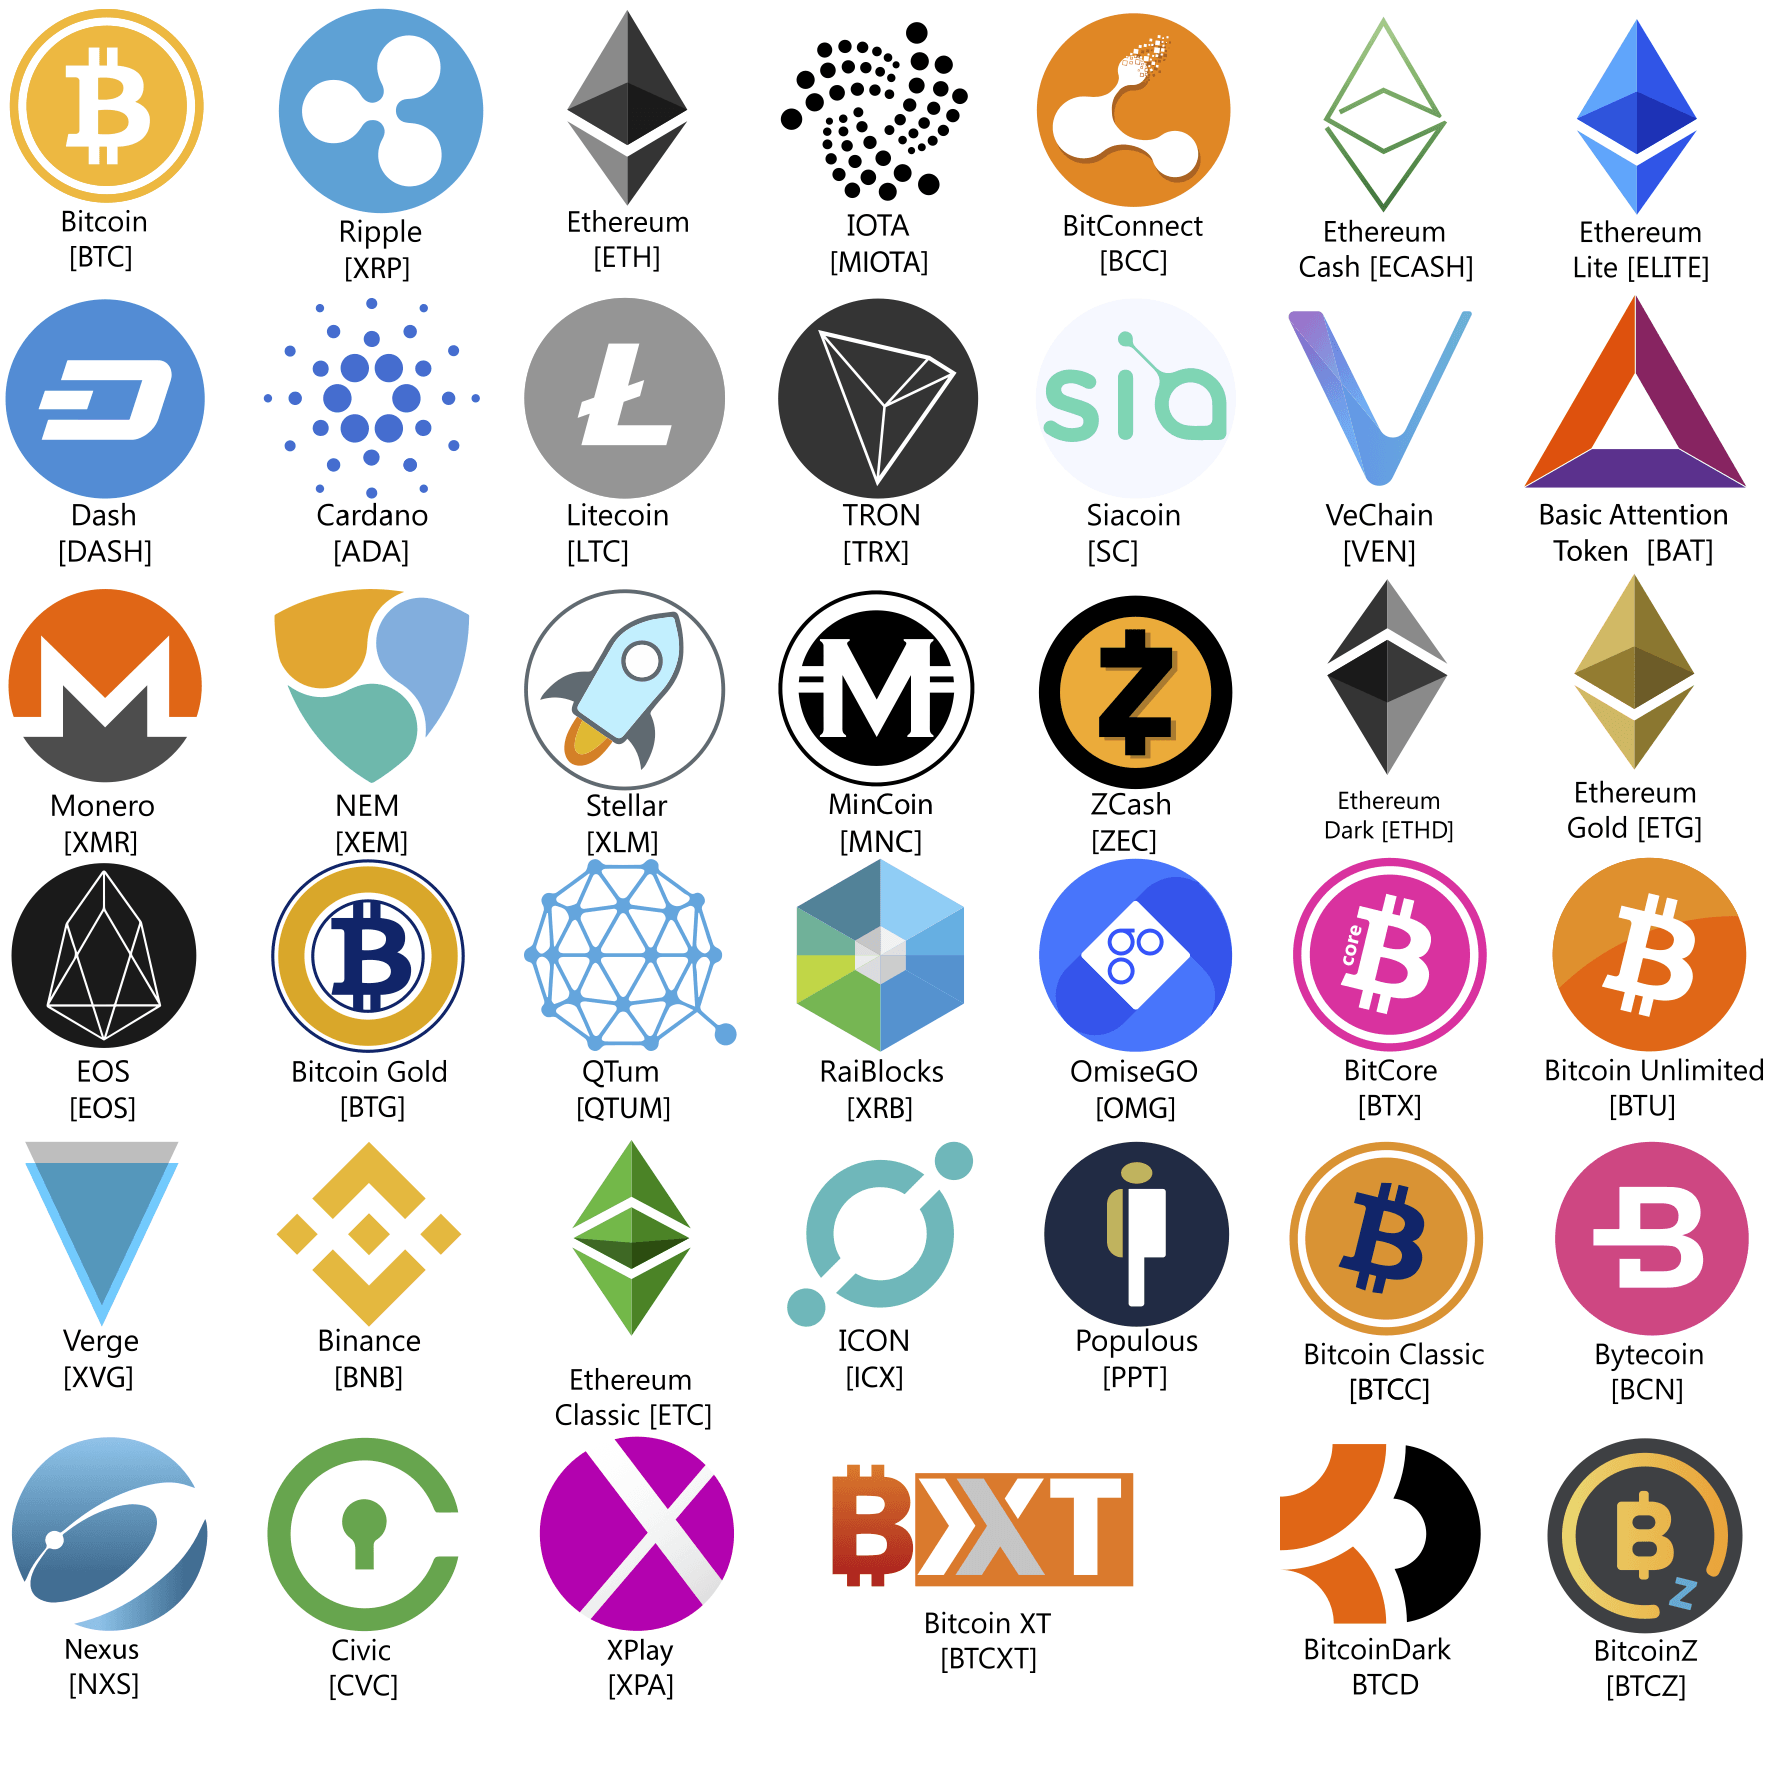 scrypt algorithm altcoin logo images